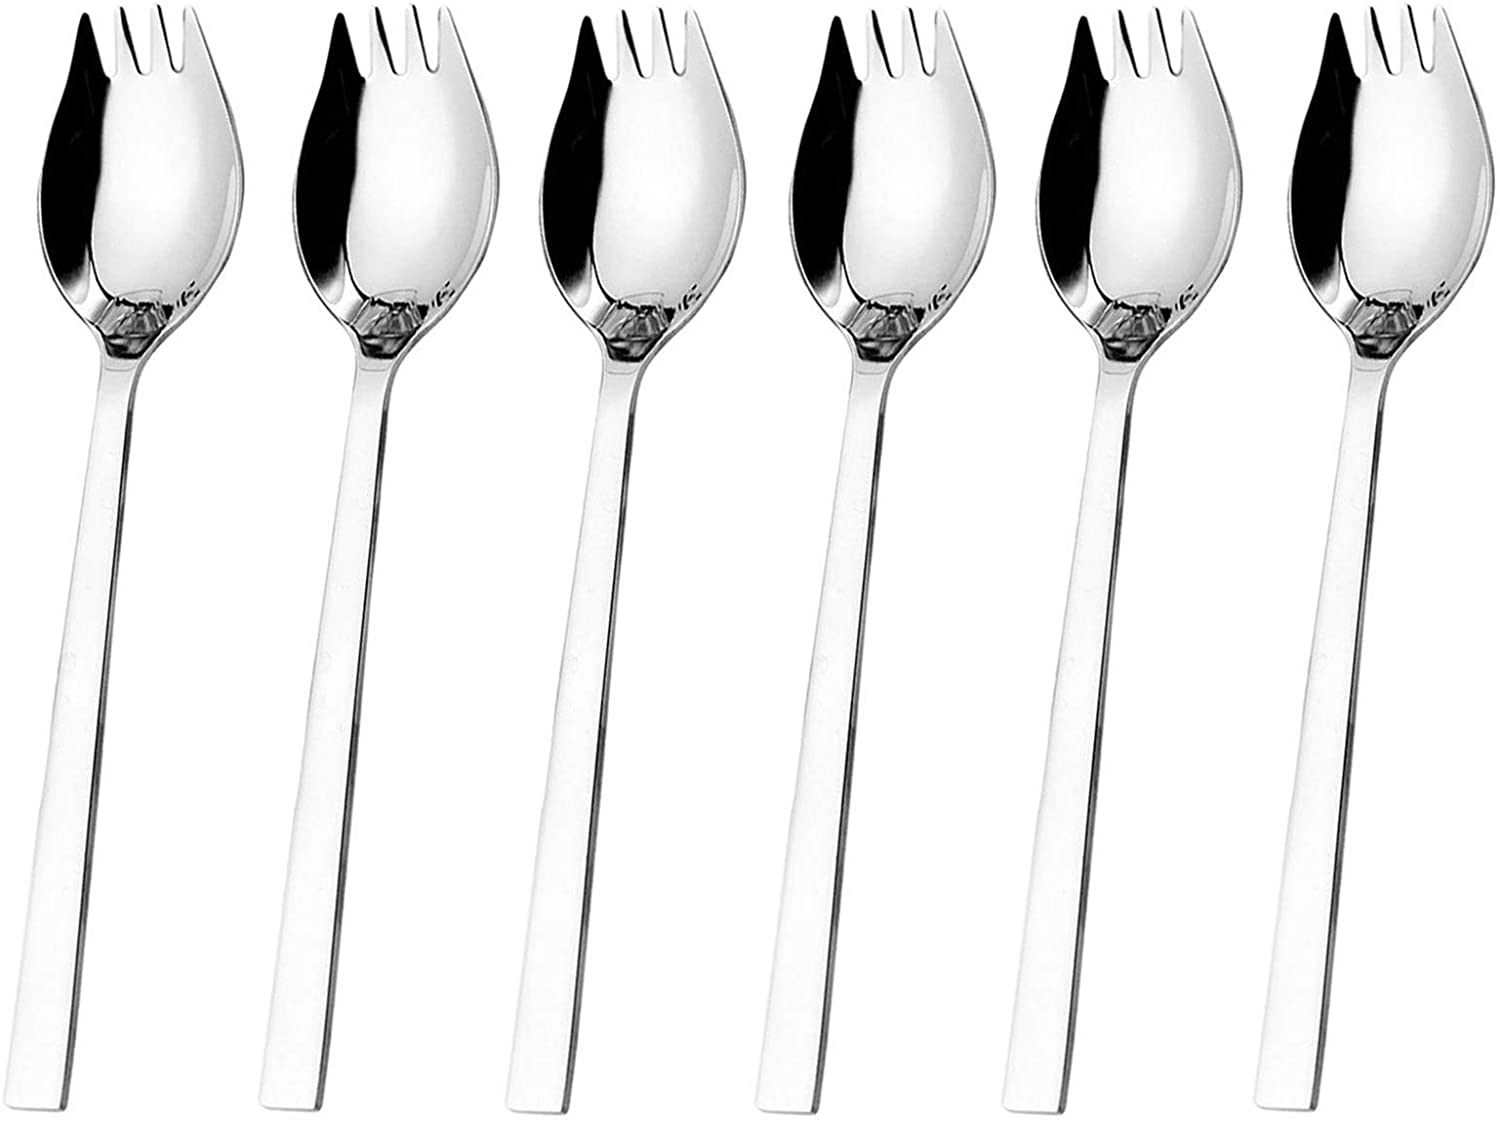 5pcs Details about  / 6Pcs Stainless Steel Sporks 2 in 1 Travel Spork for Travel Home